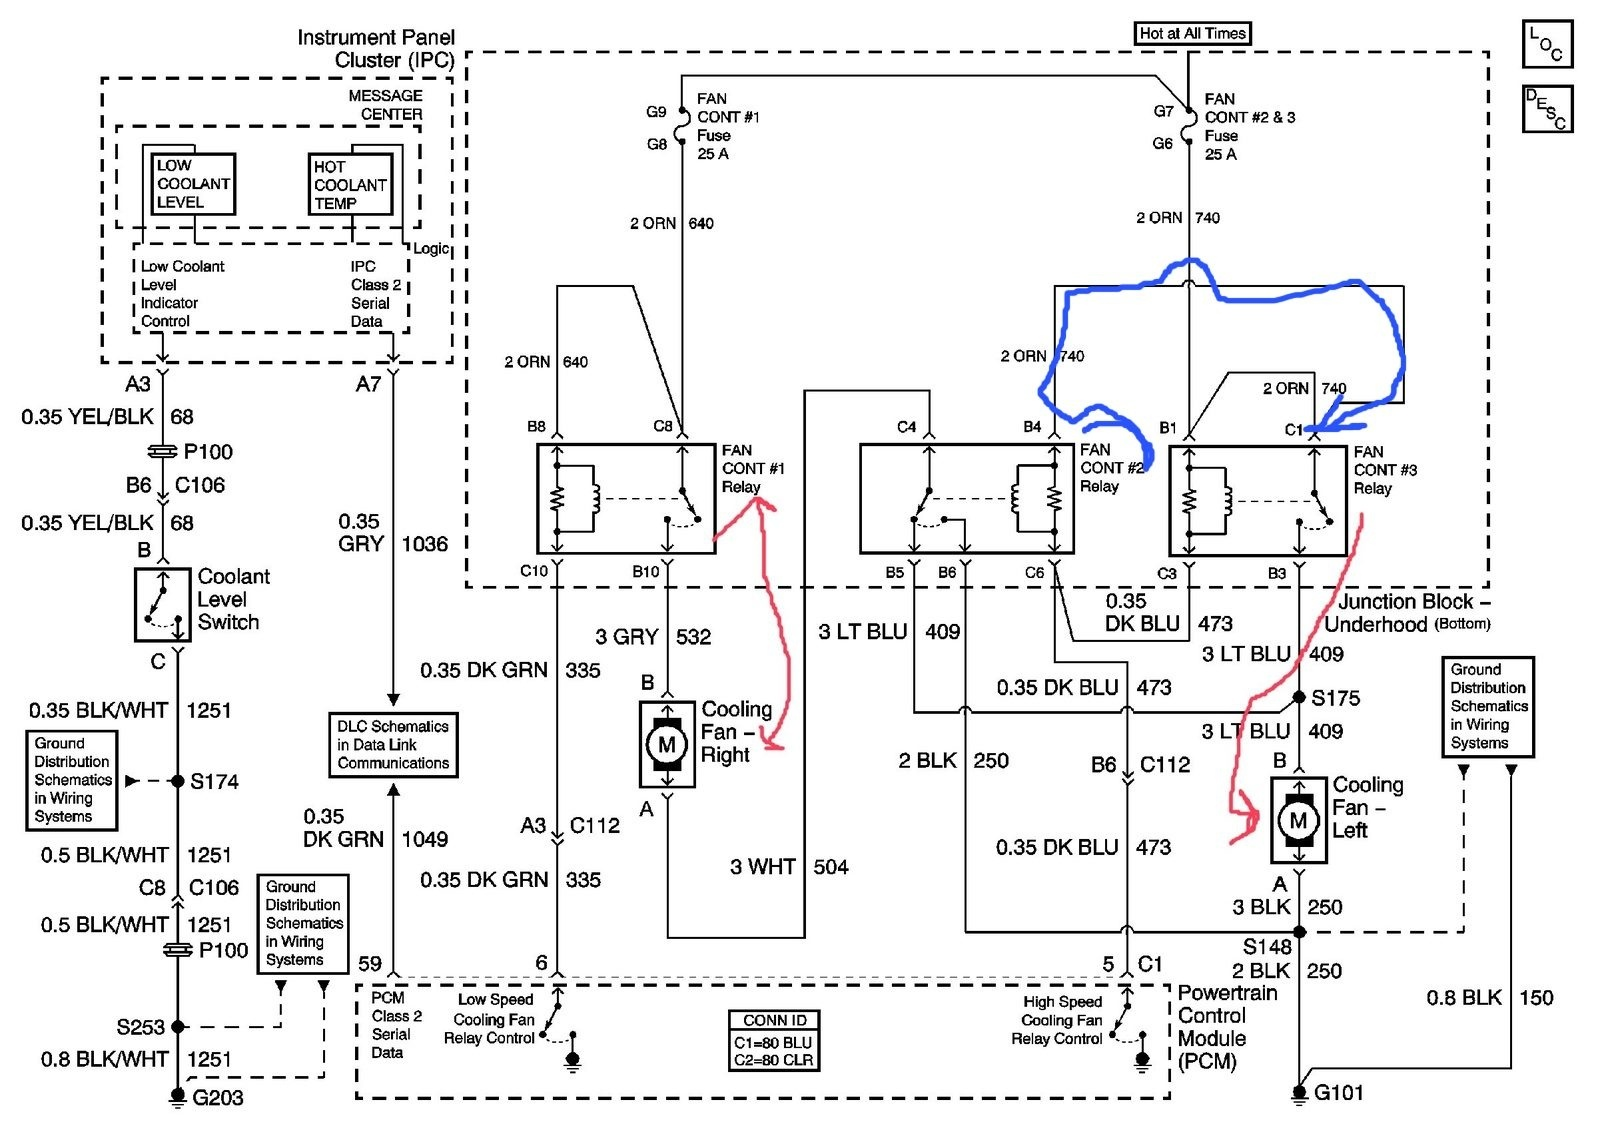 Discussion T39799 ds653133 on 2005 chevy impala fuse box diagram